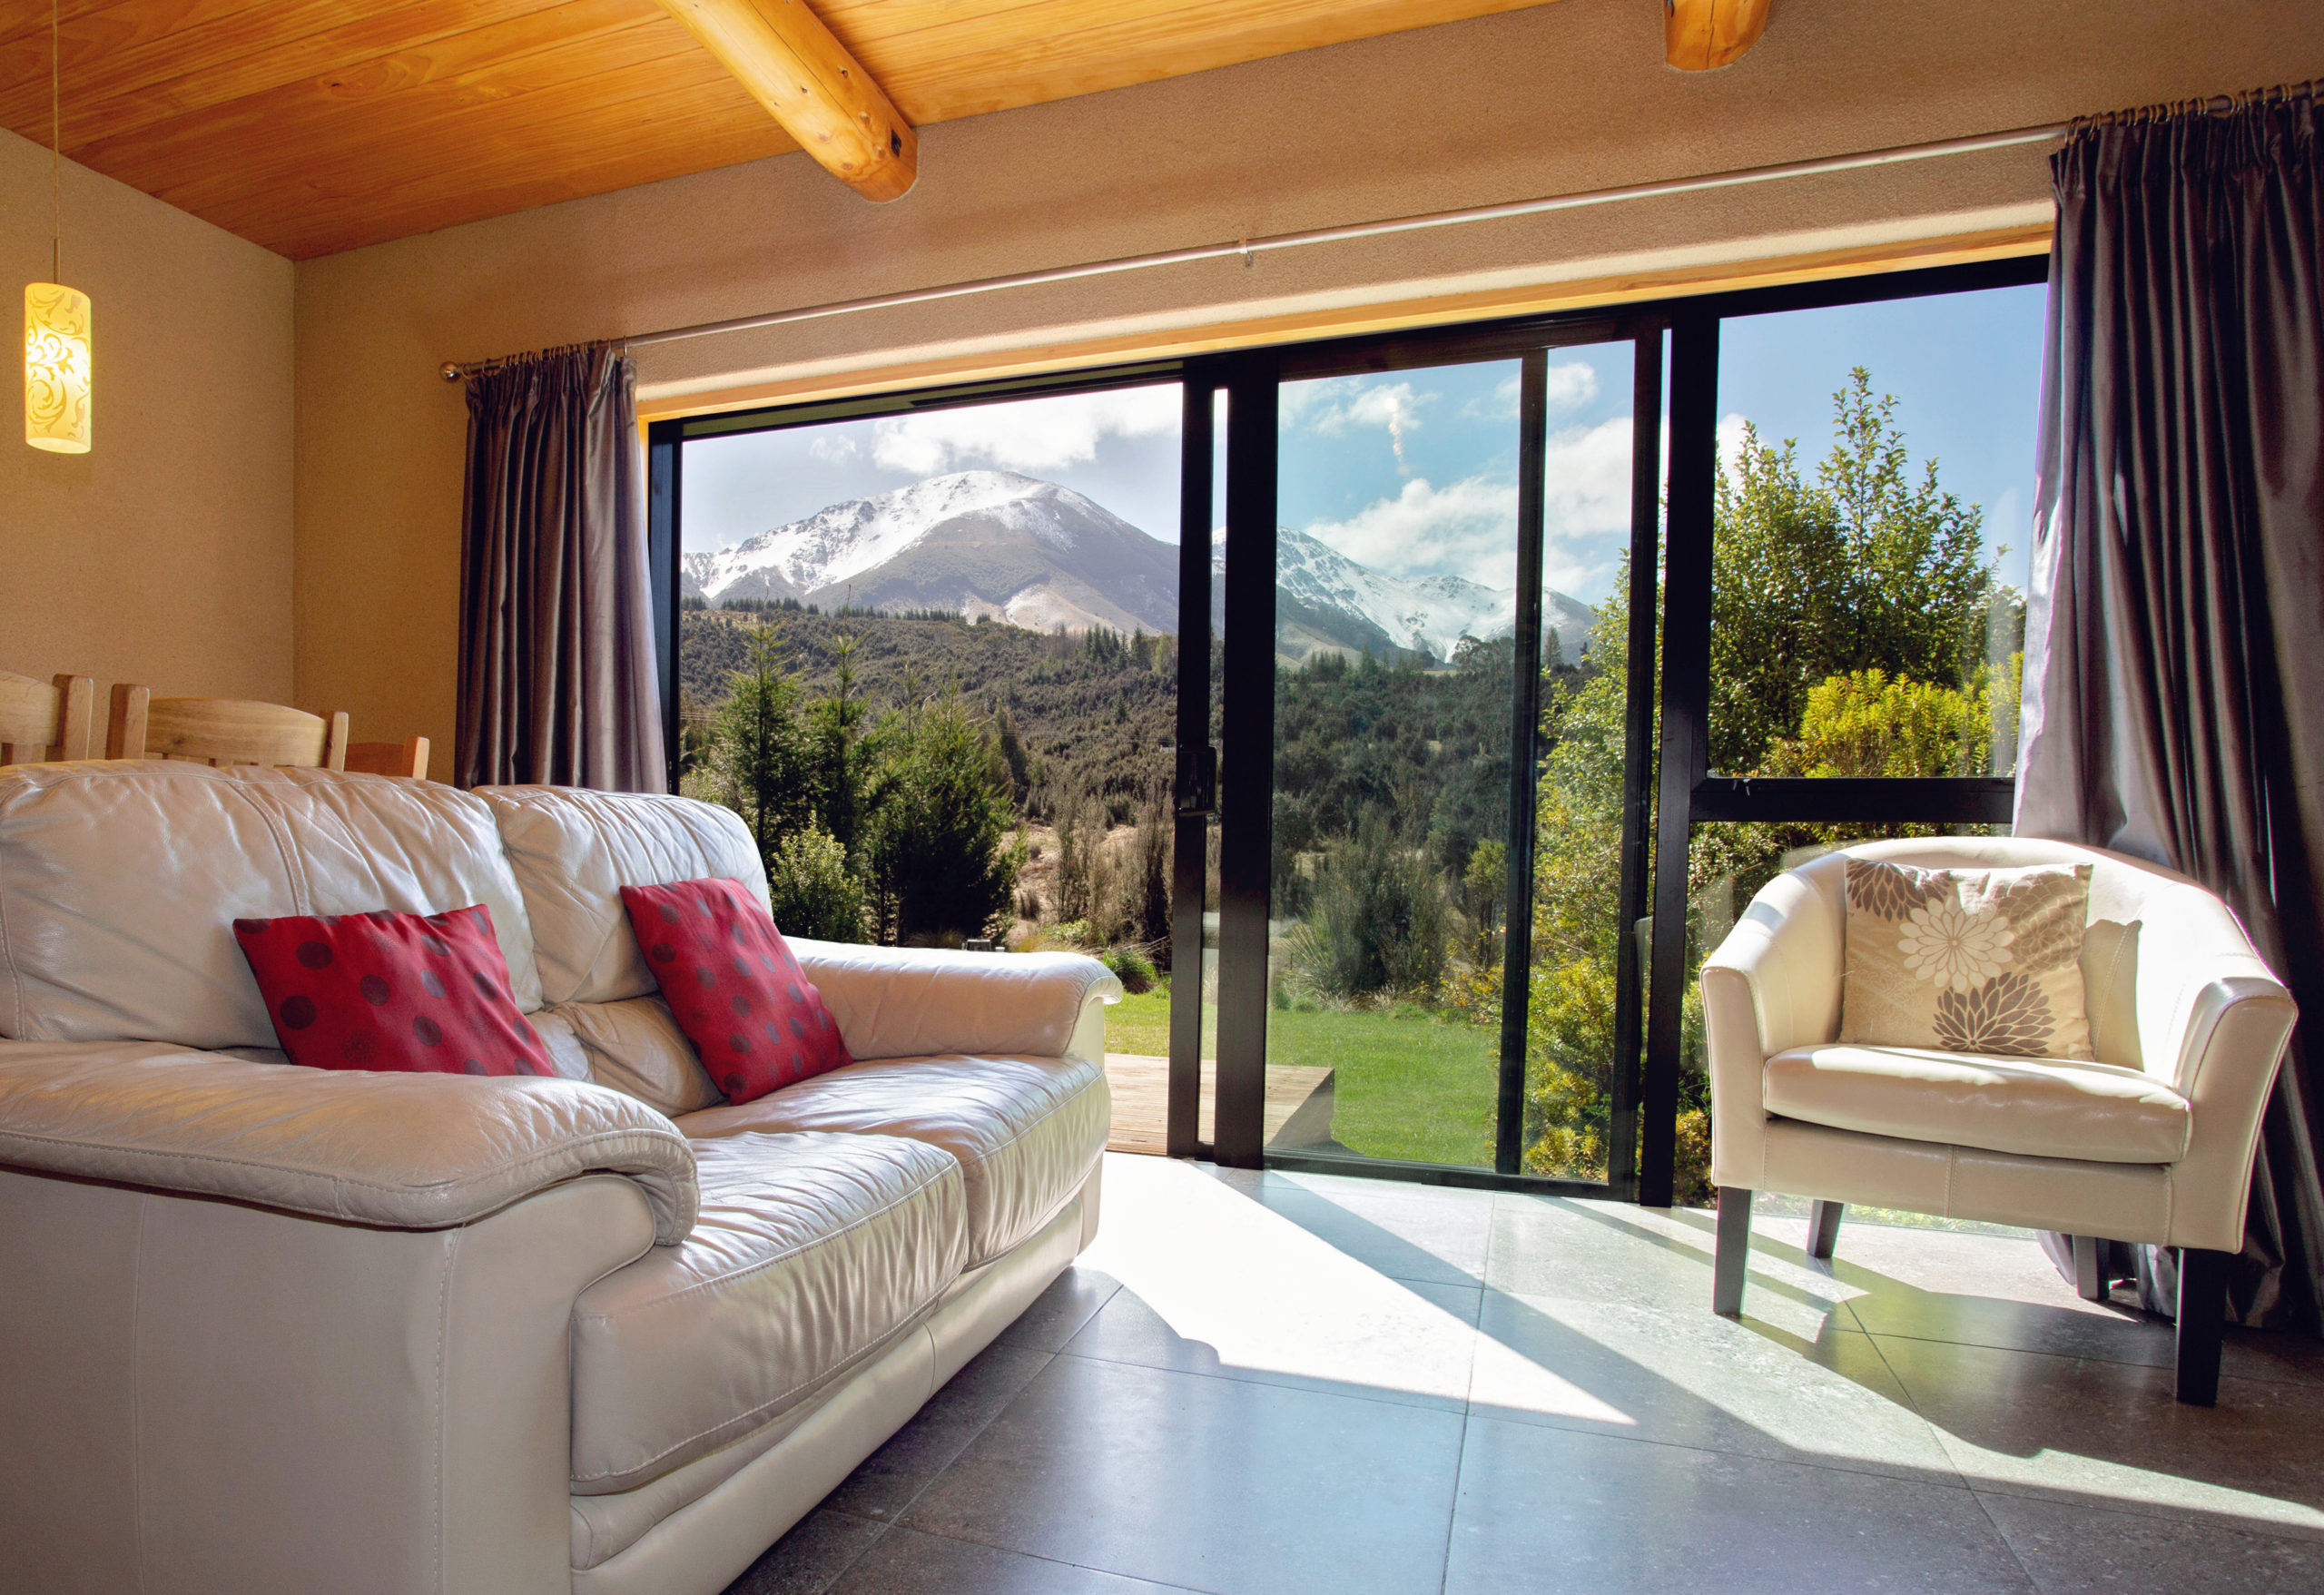 Stay in a log cabin or<br>eco lodge